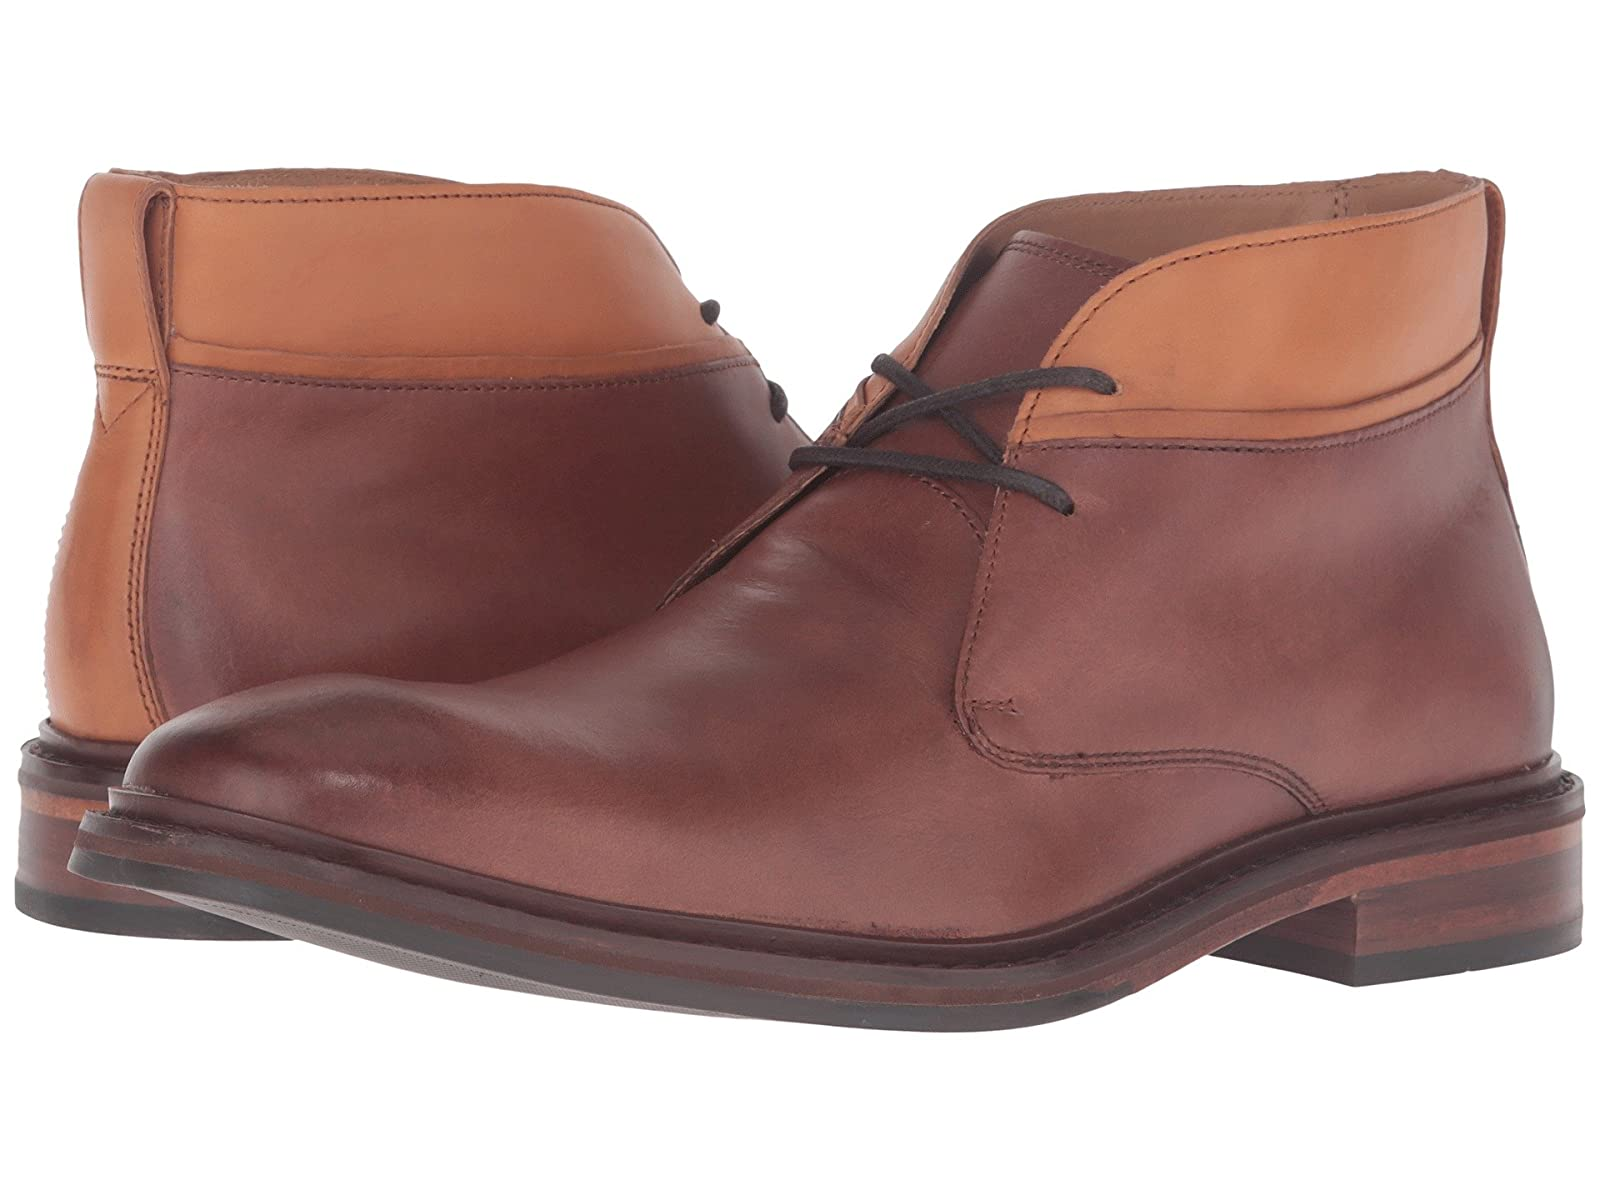 Cole Haan Willliams Welt Chukka IICheap and distinctive eye-catching shoes